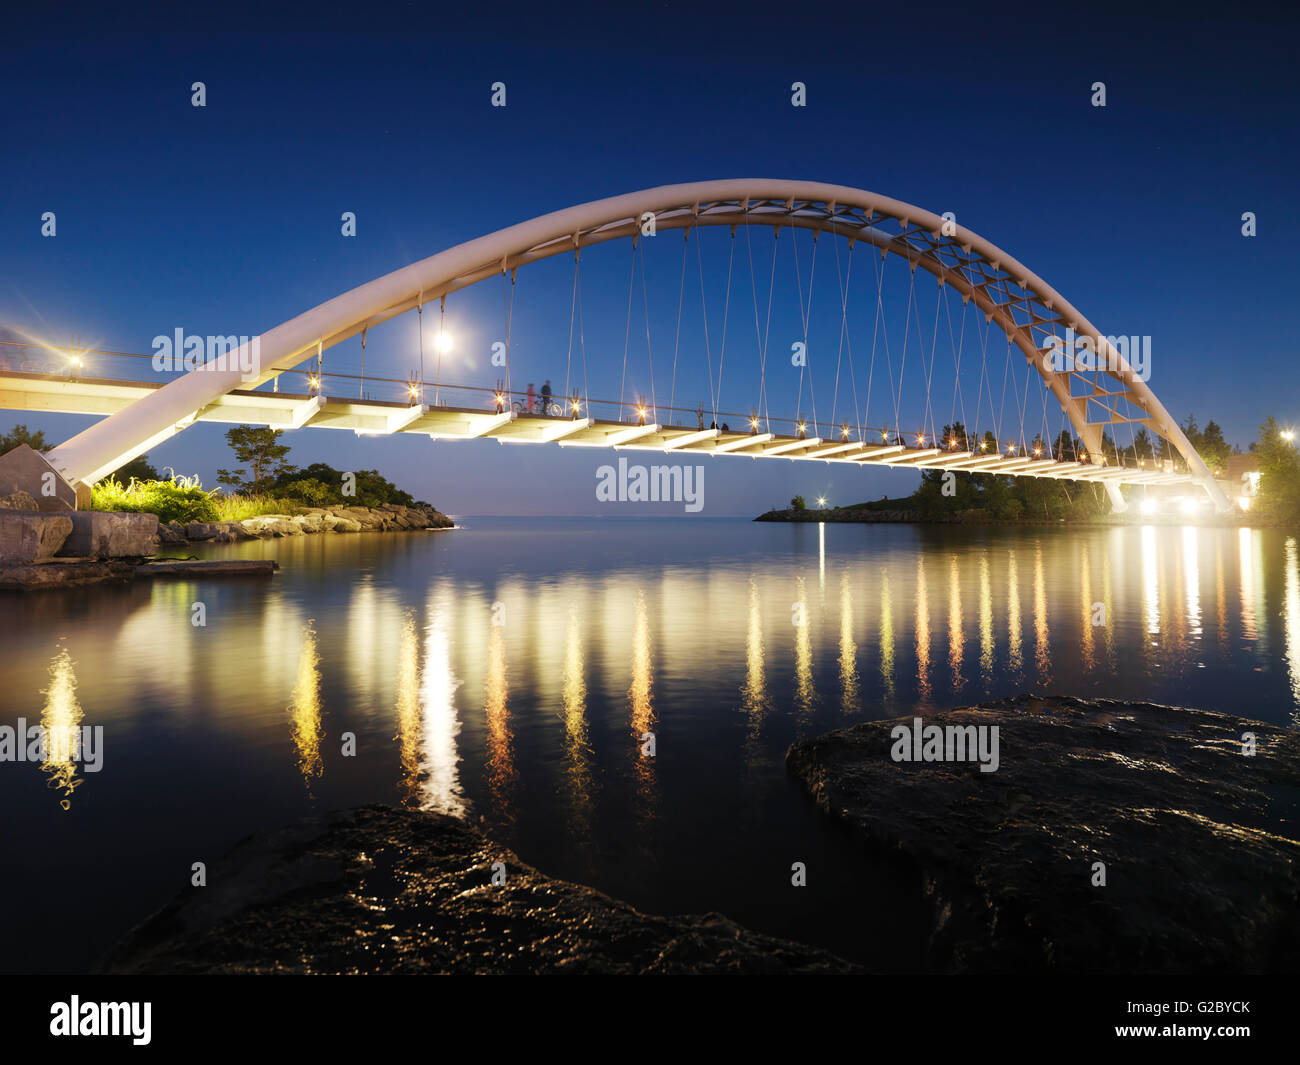 Humber River Arch Bridge at night, Toronto, Ontario Province, Canada - Stock Image